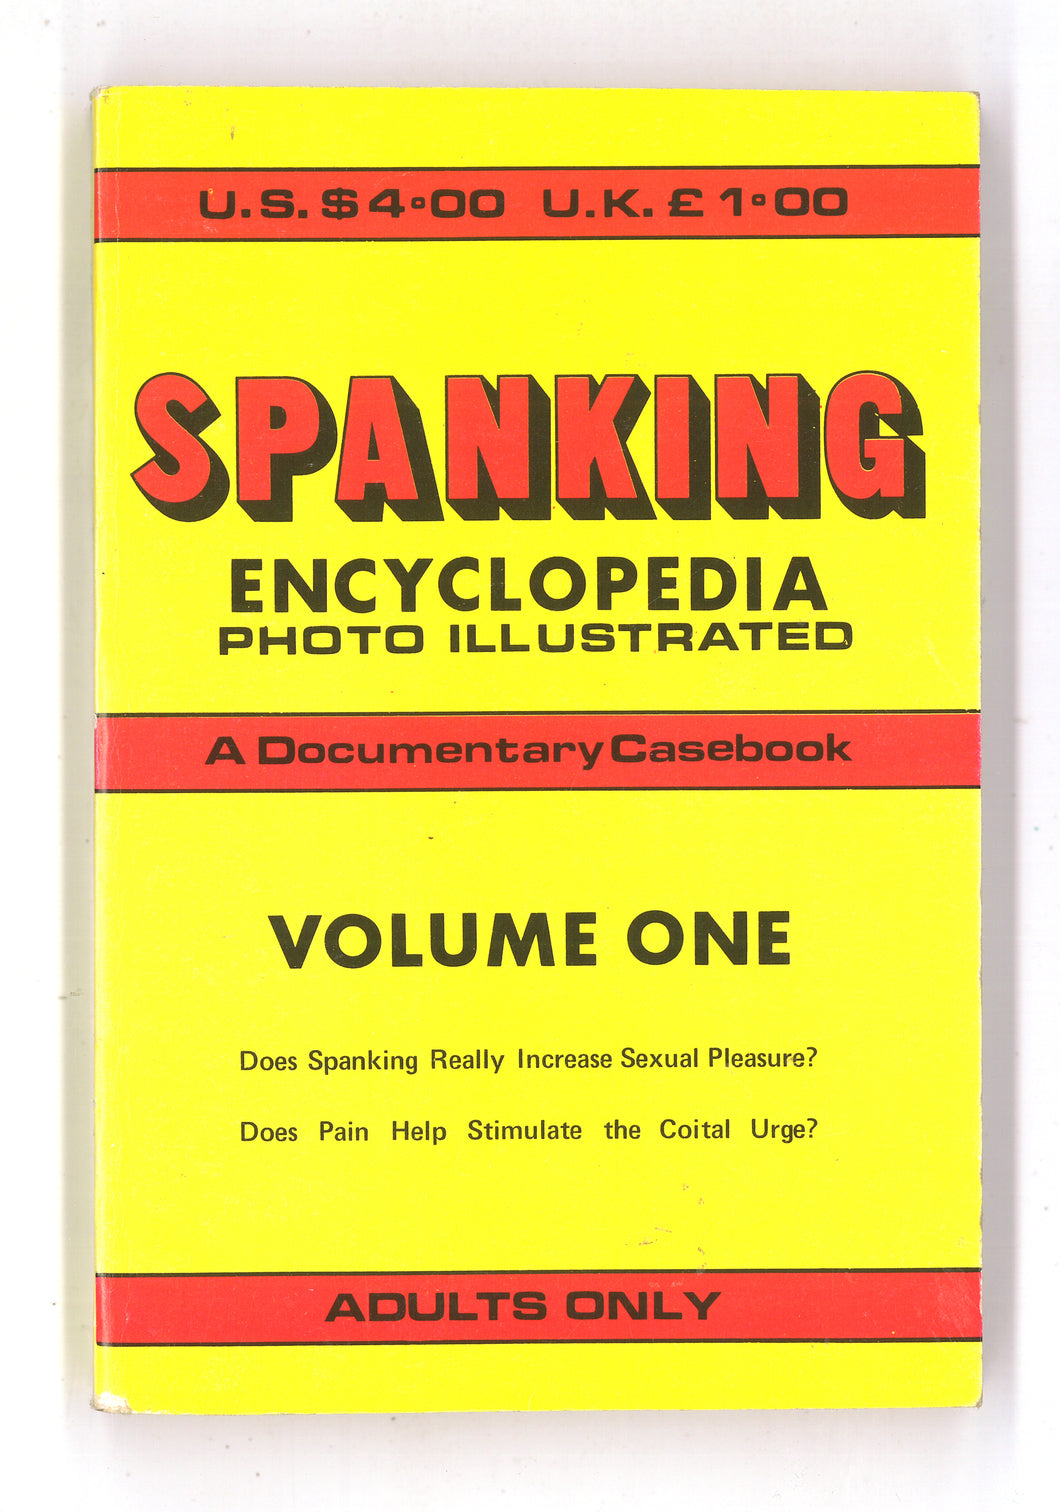 Spanking Encyclopedia Vol 1